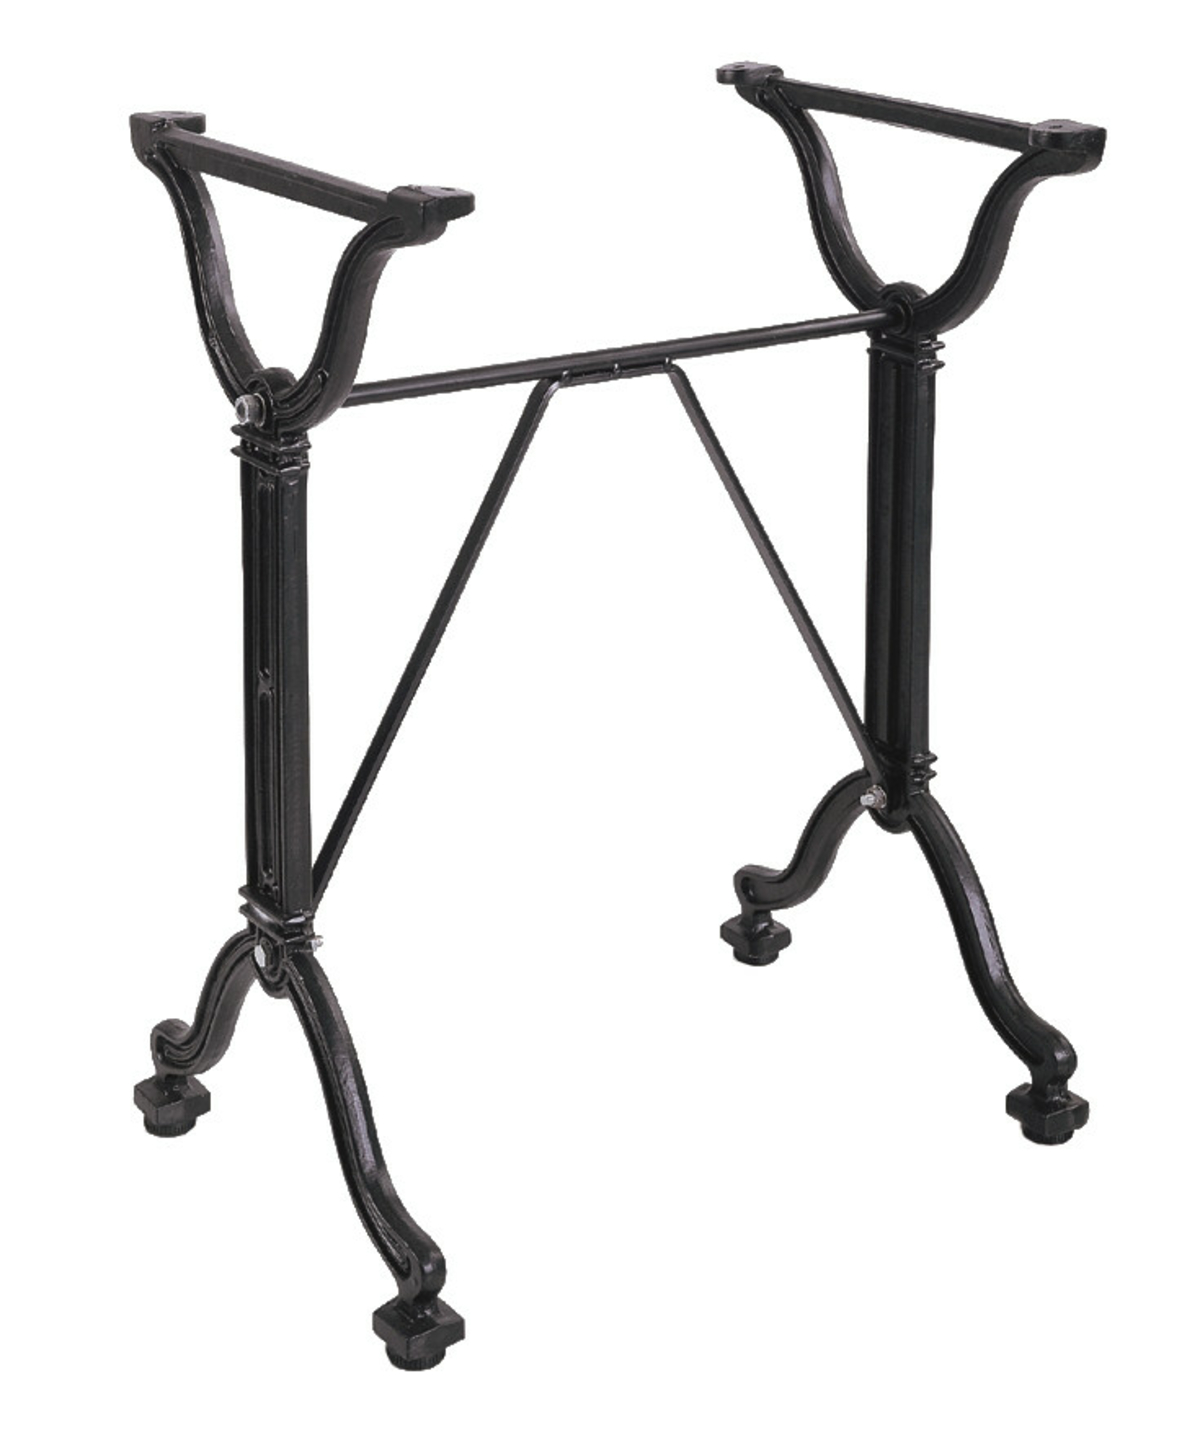 Pied de table noir 54x38 cm Retro